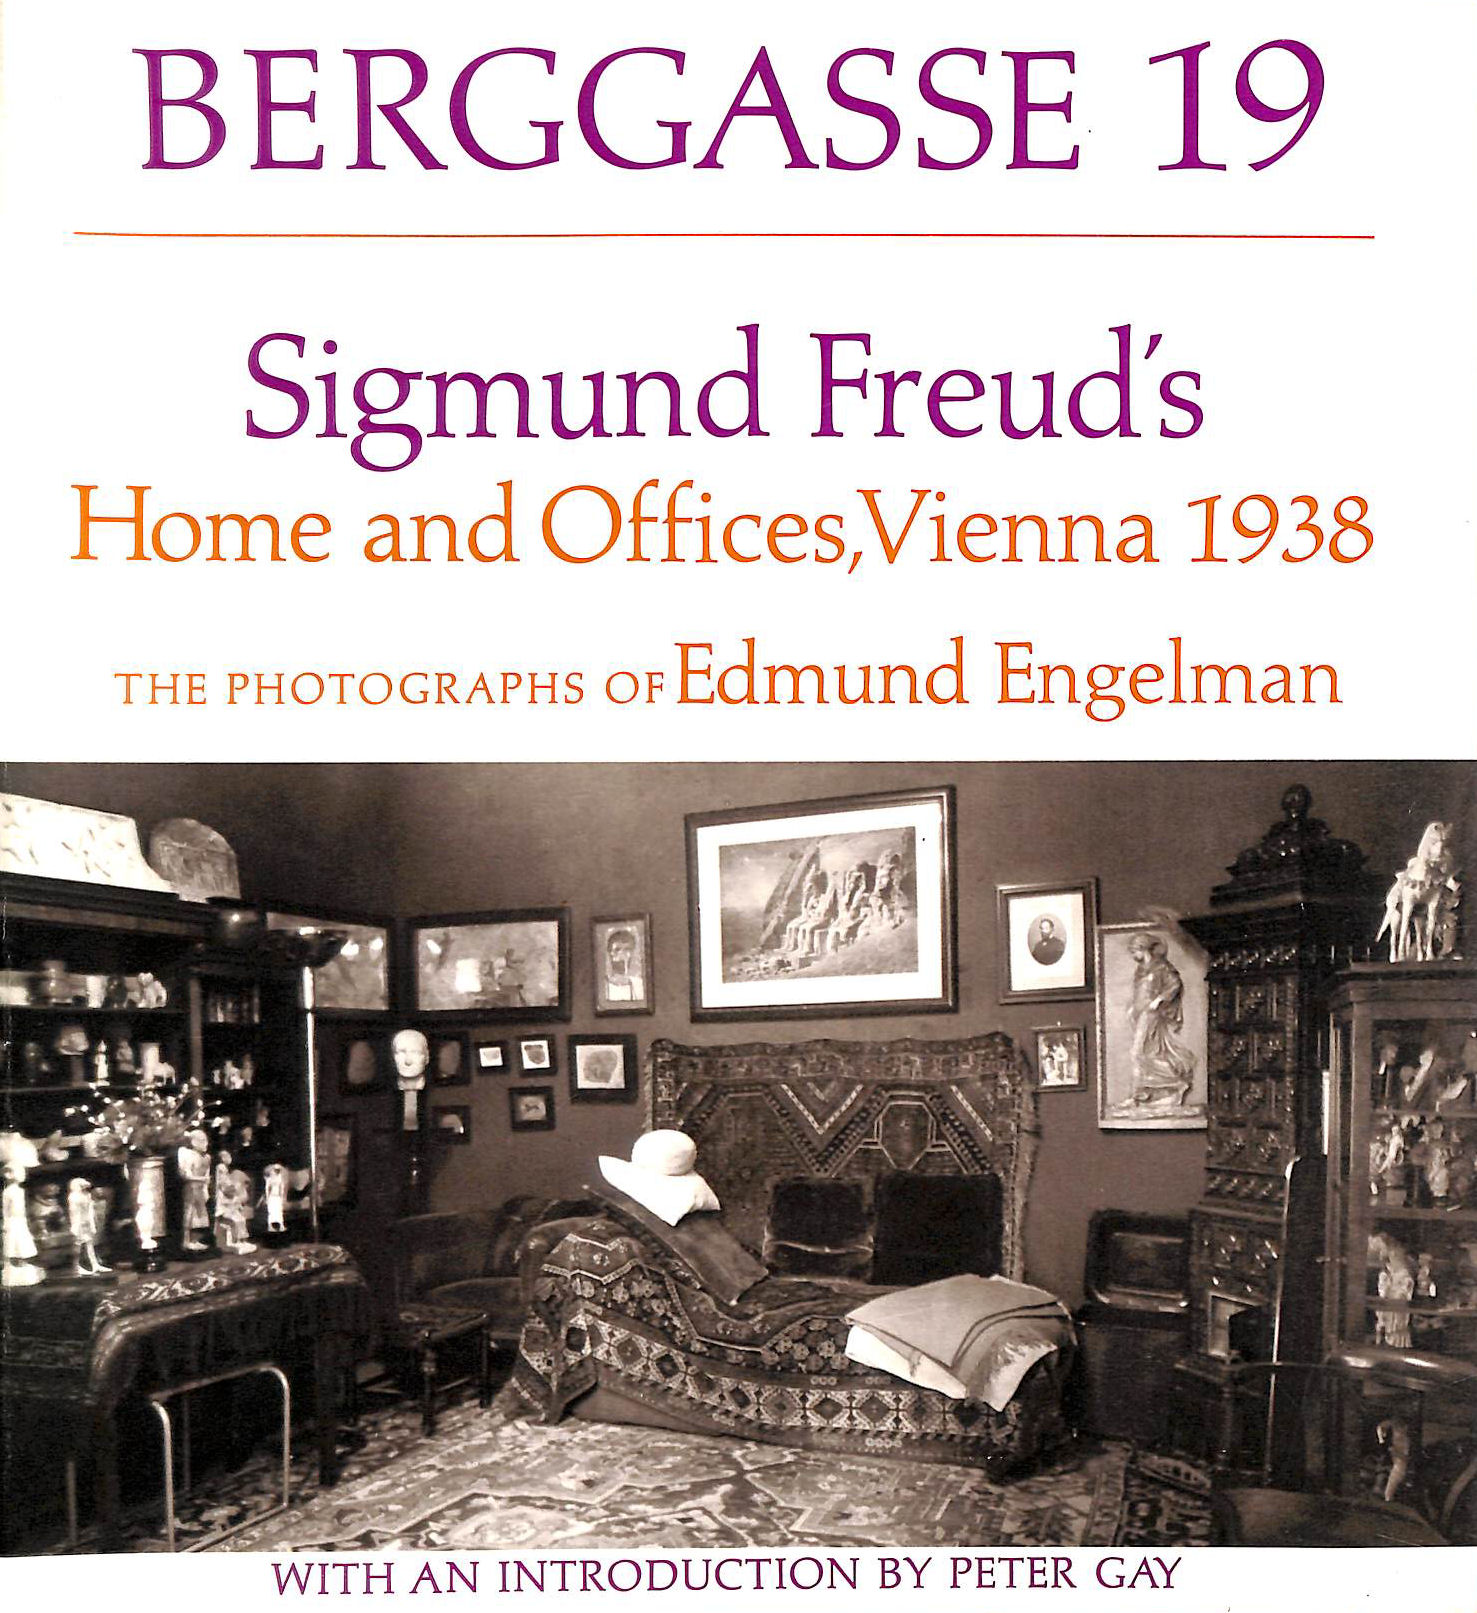 Image for Berggasse 19: Sigmund Freud's Home and Offices- Vienna- 1938: The Photographs of Edmund Engelman